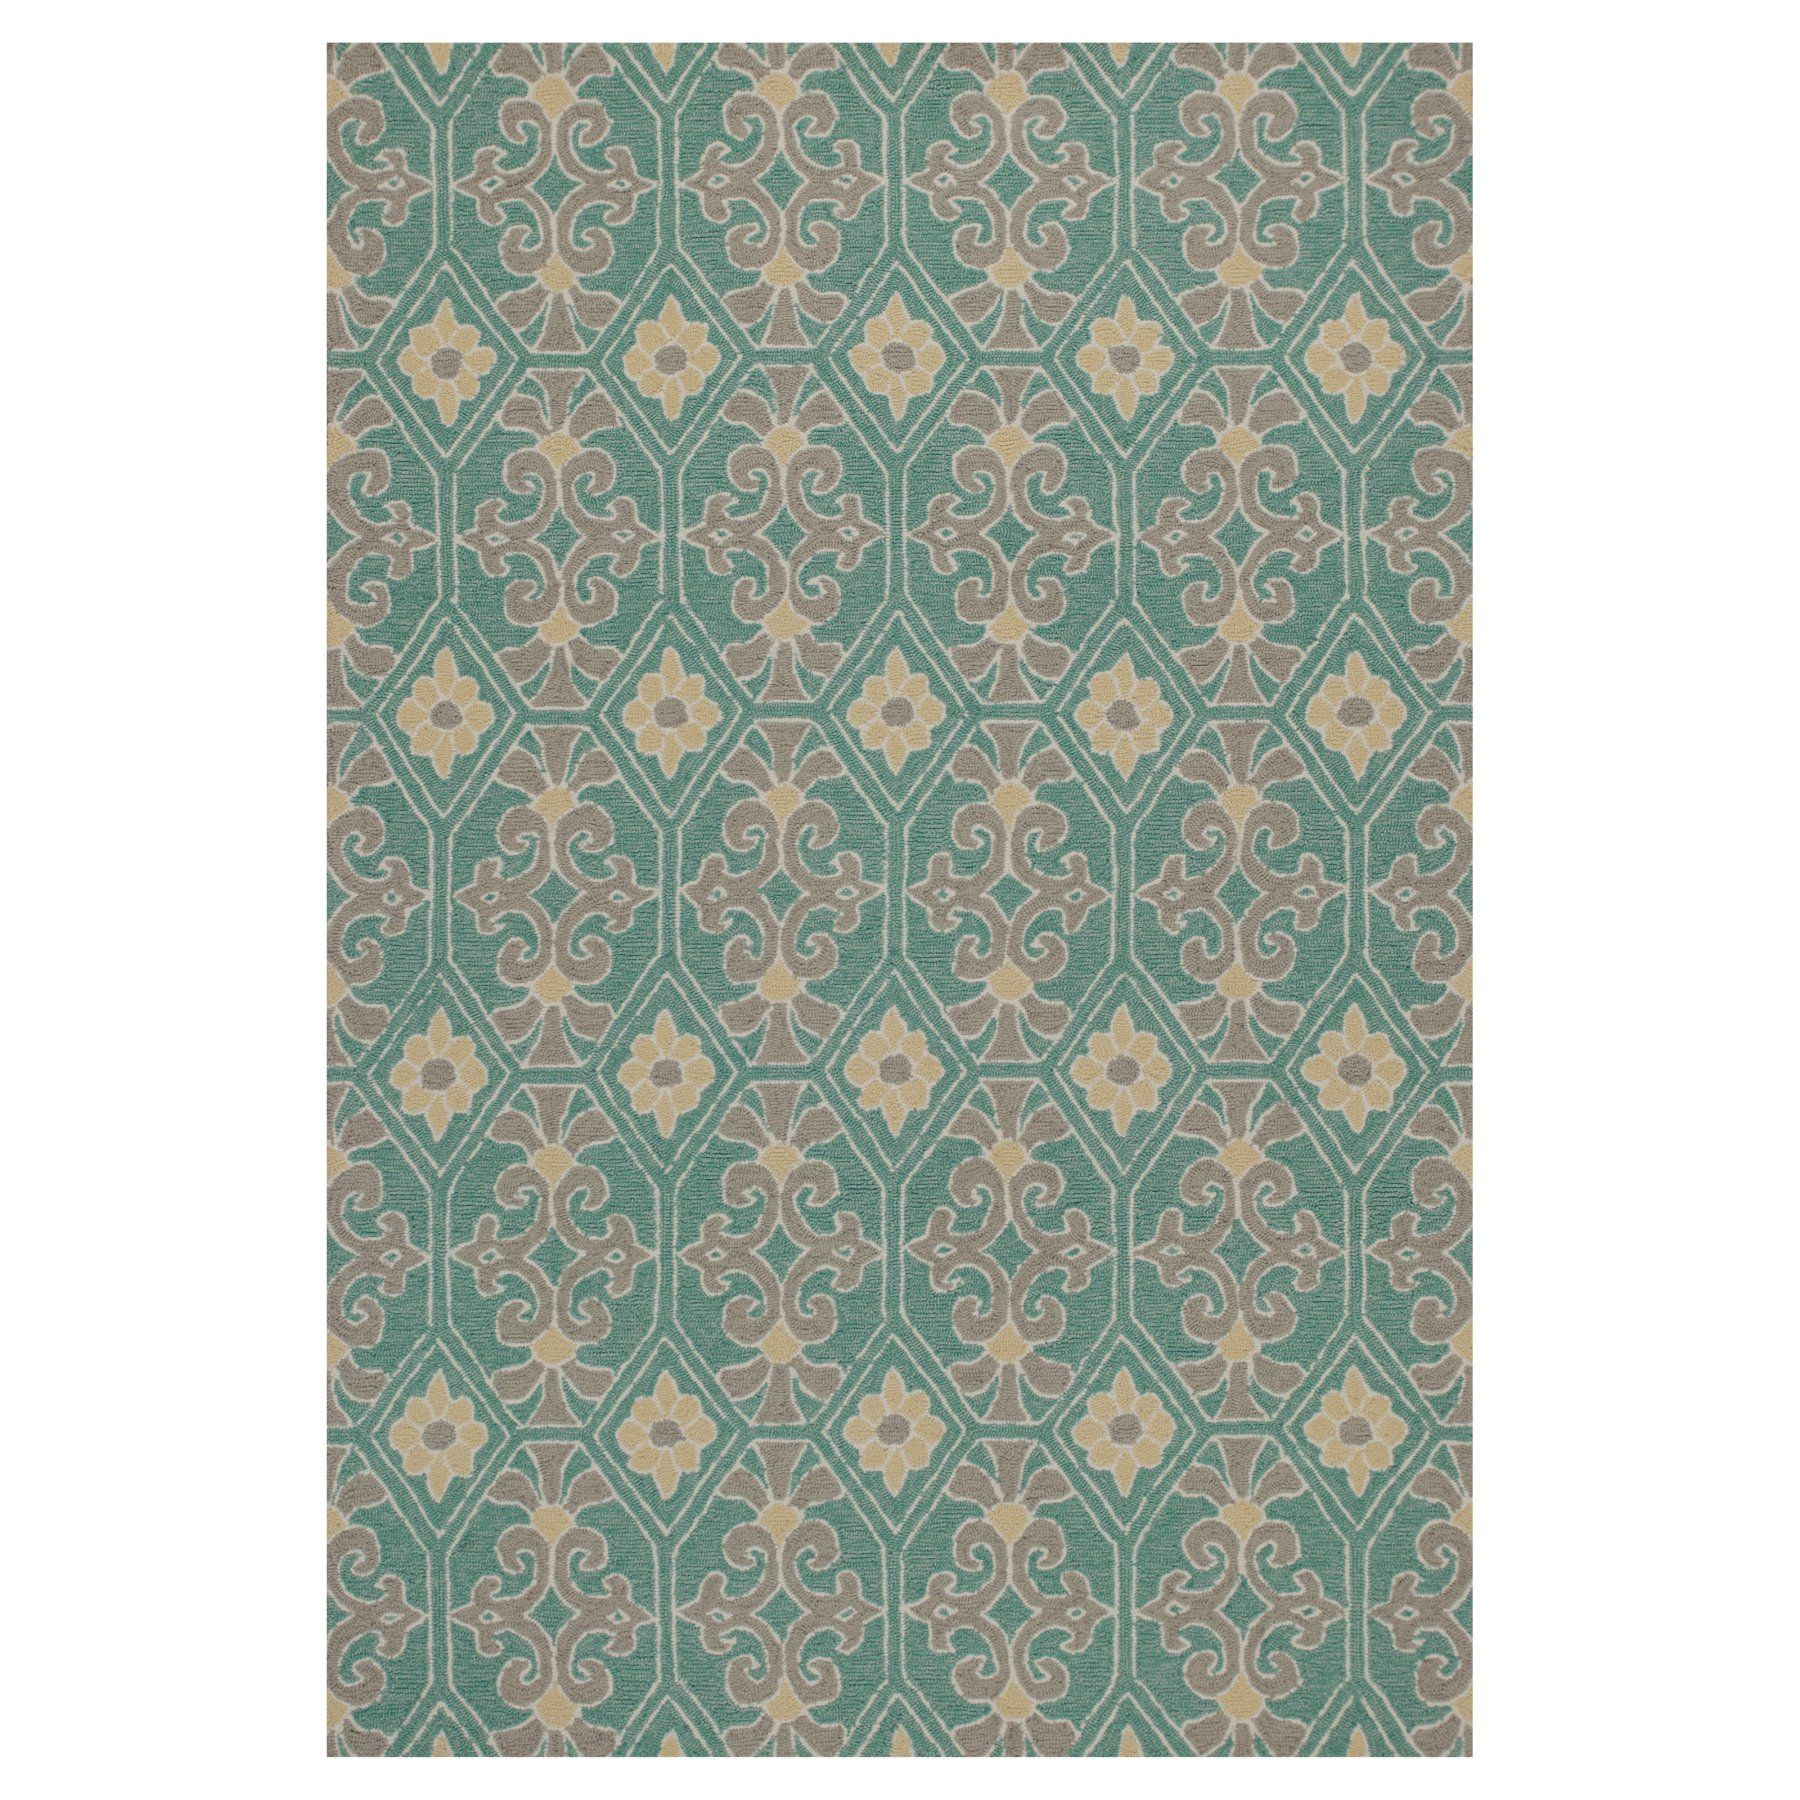 KAS Rugs Harbor 4215 Empire Indoor/Outdoor Area Rug - HAR42152X3